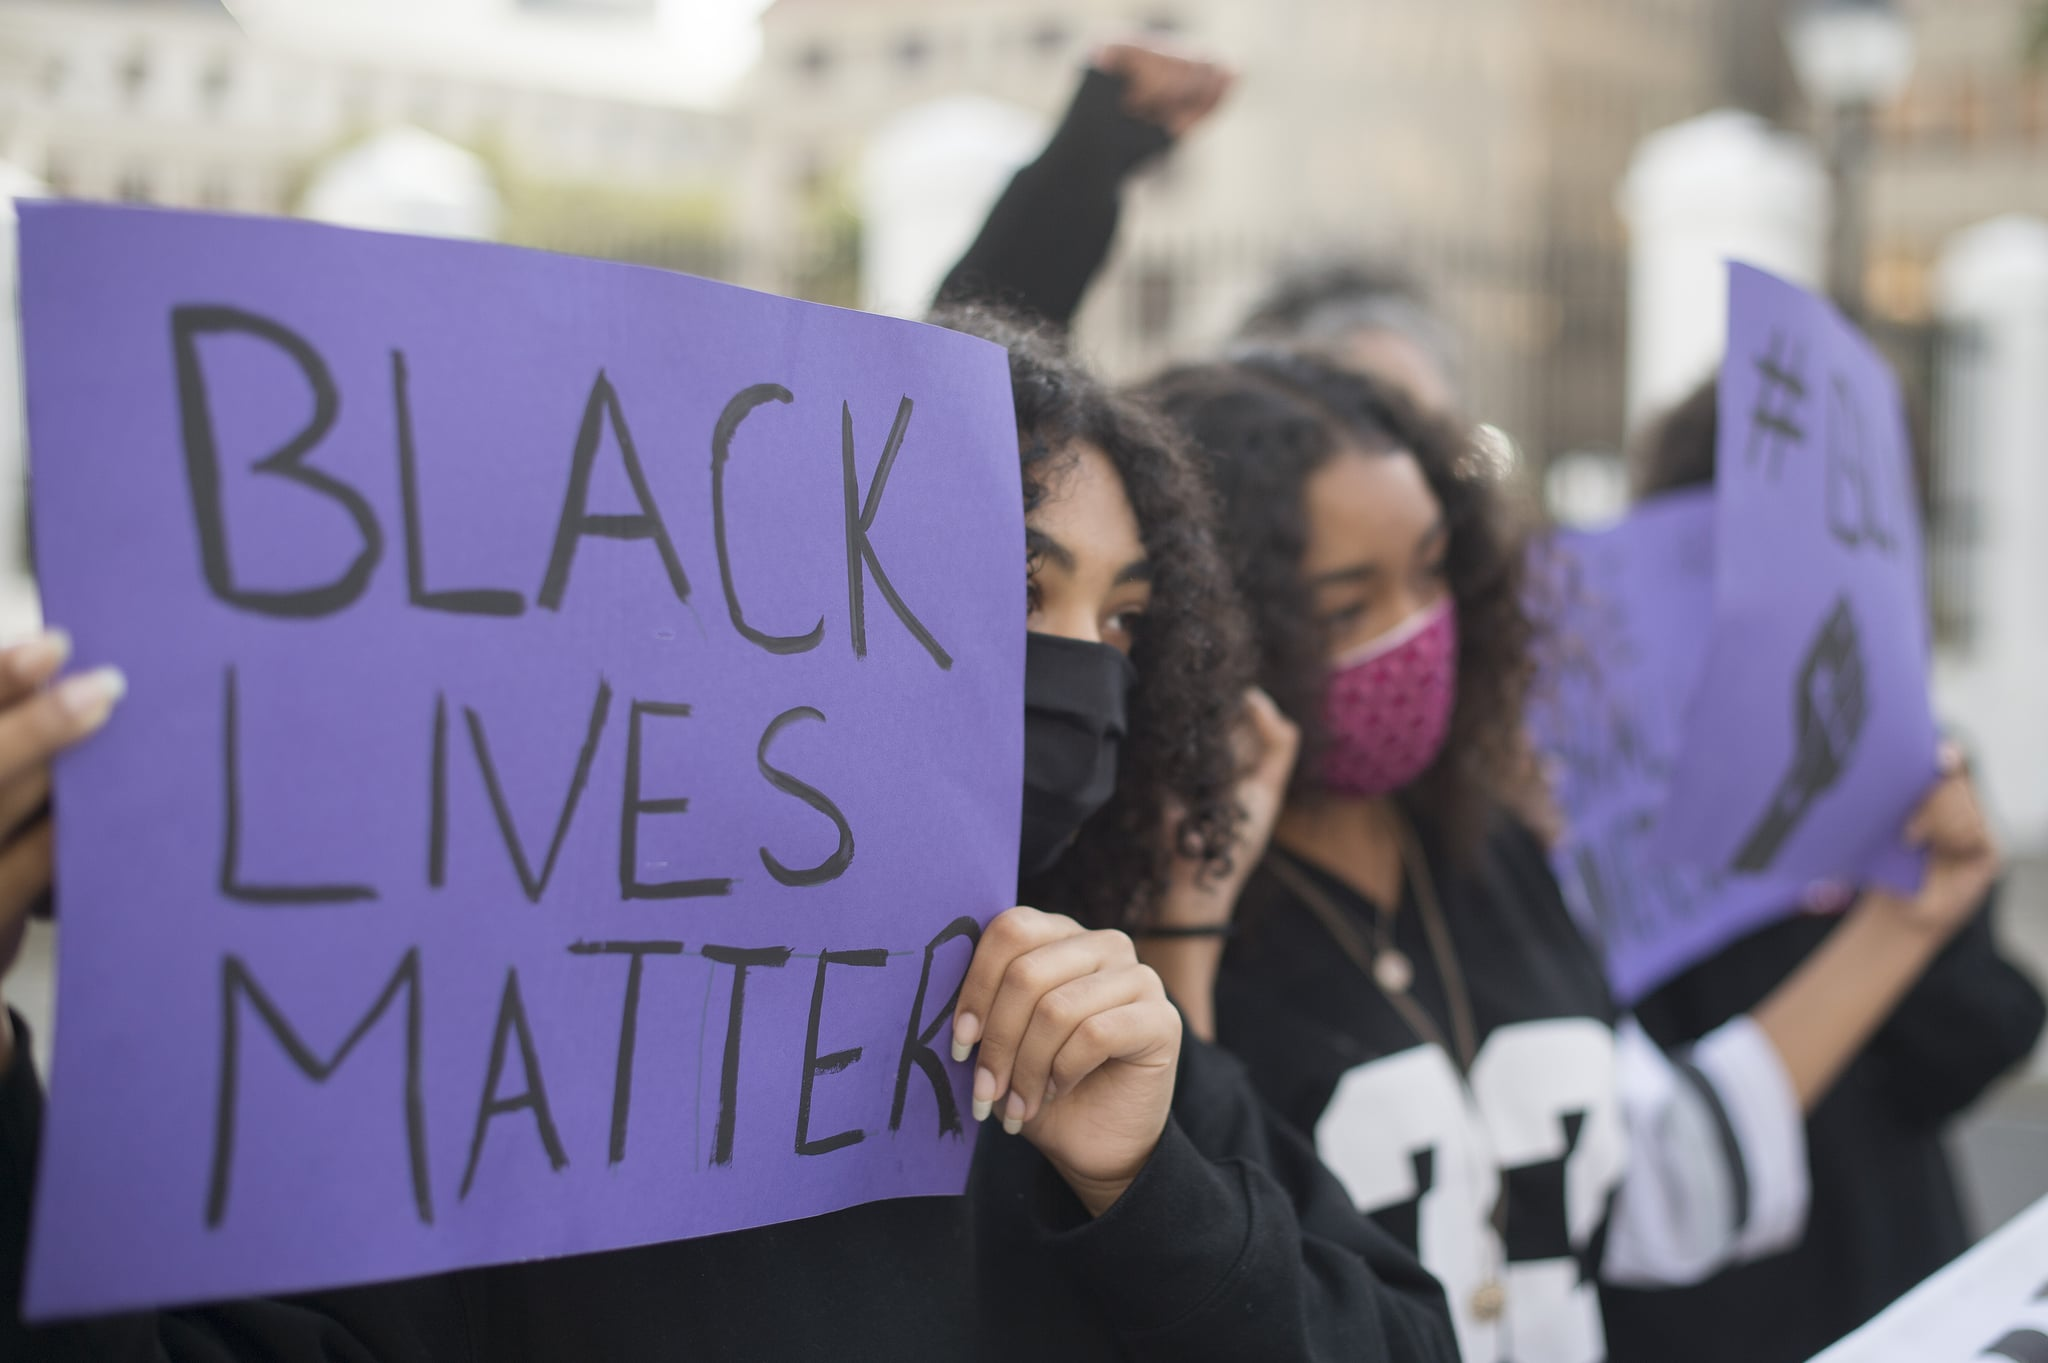 Protestors hold up placards during a protest against police violence, at the gates of the South African Parliament in Cape Town, on June 3, 2020. - This protest is in solidarity with the Black Lives Matter movement in the United States of America (USA), and around the world  following the death of George Floyd in police custody in Minneapolis. (Photo by RODGER BOSCH / AFP) (Photo by RODGER BOSCH/AFP via Getty Images)